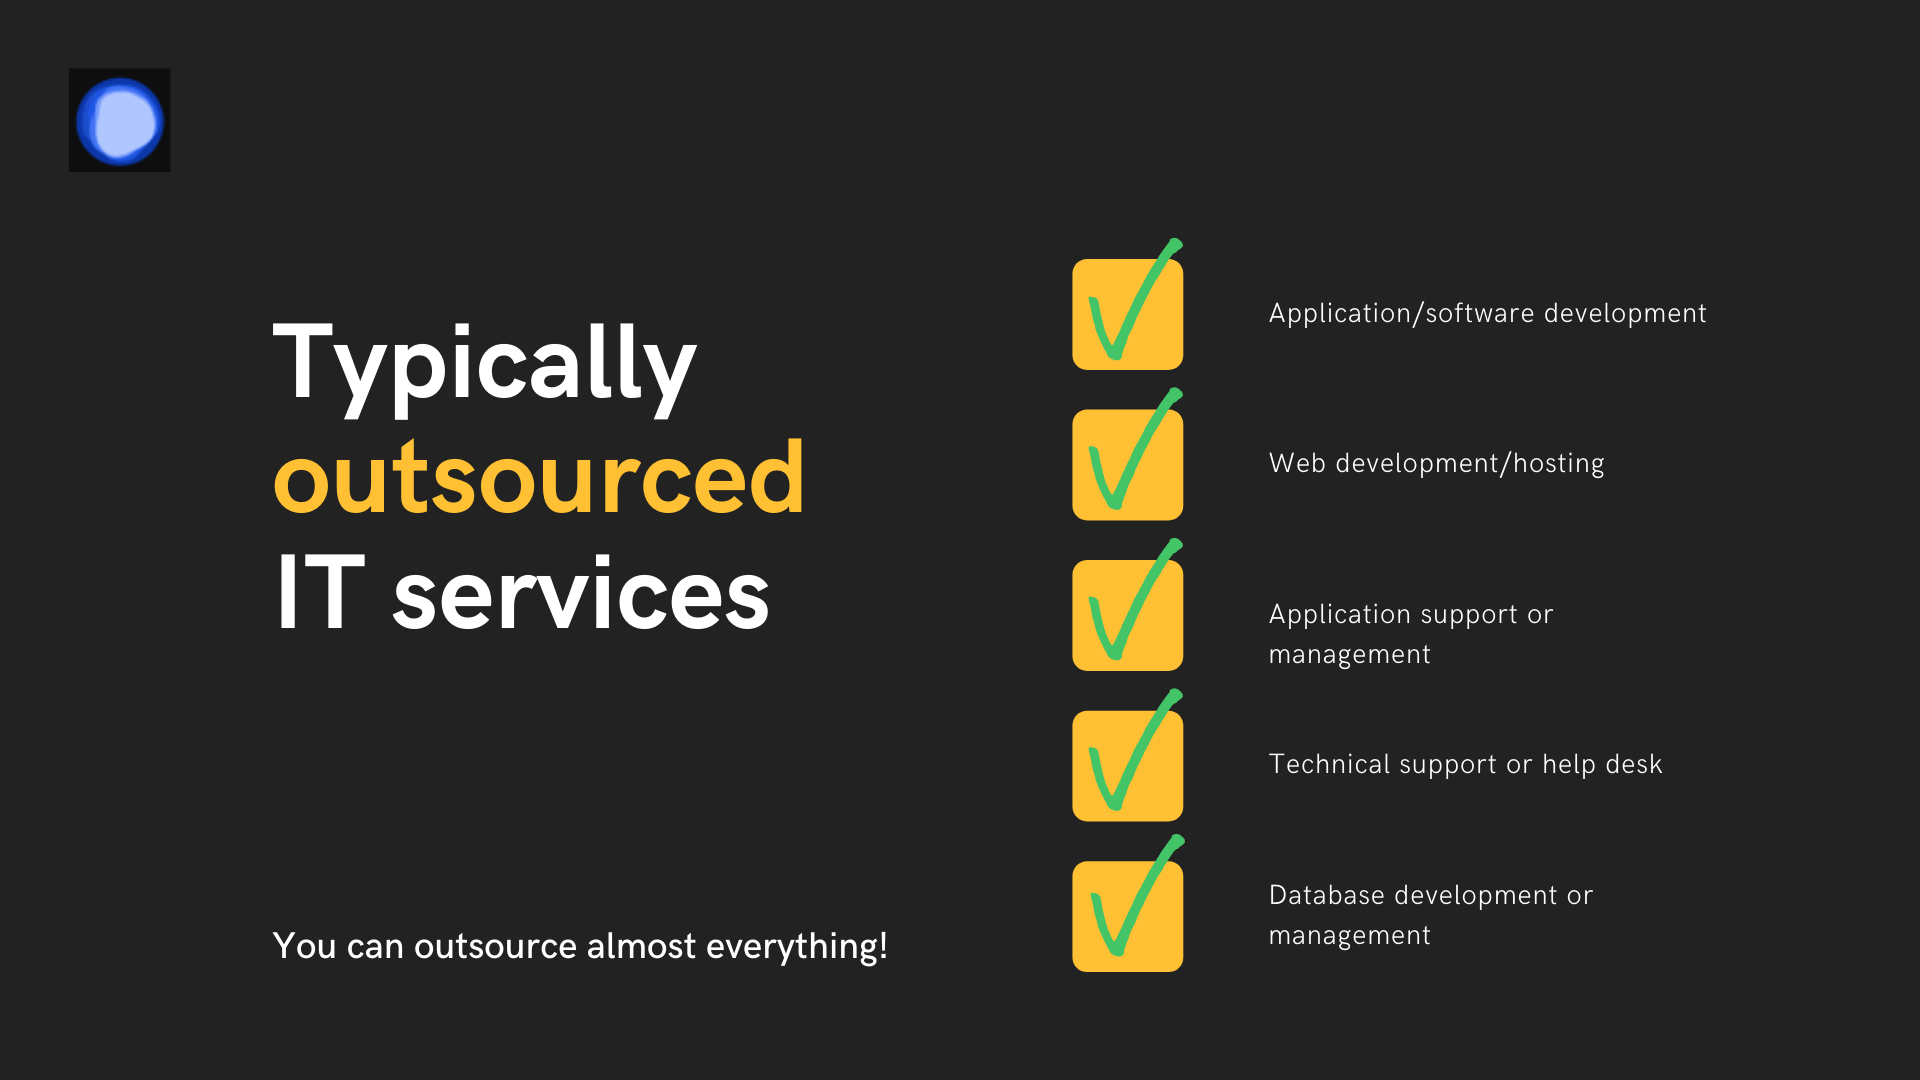 Typically outsourced IT services